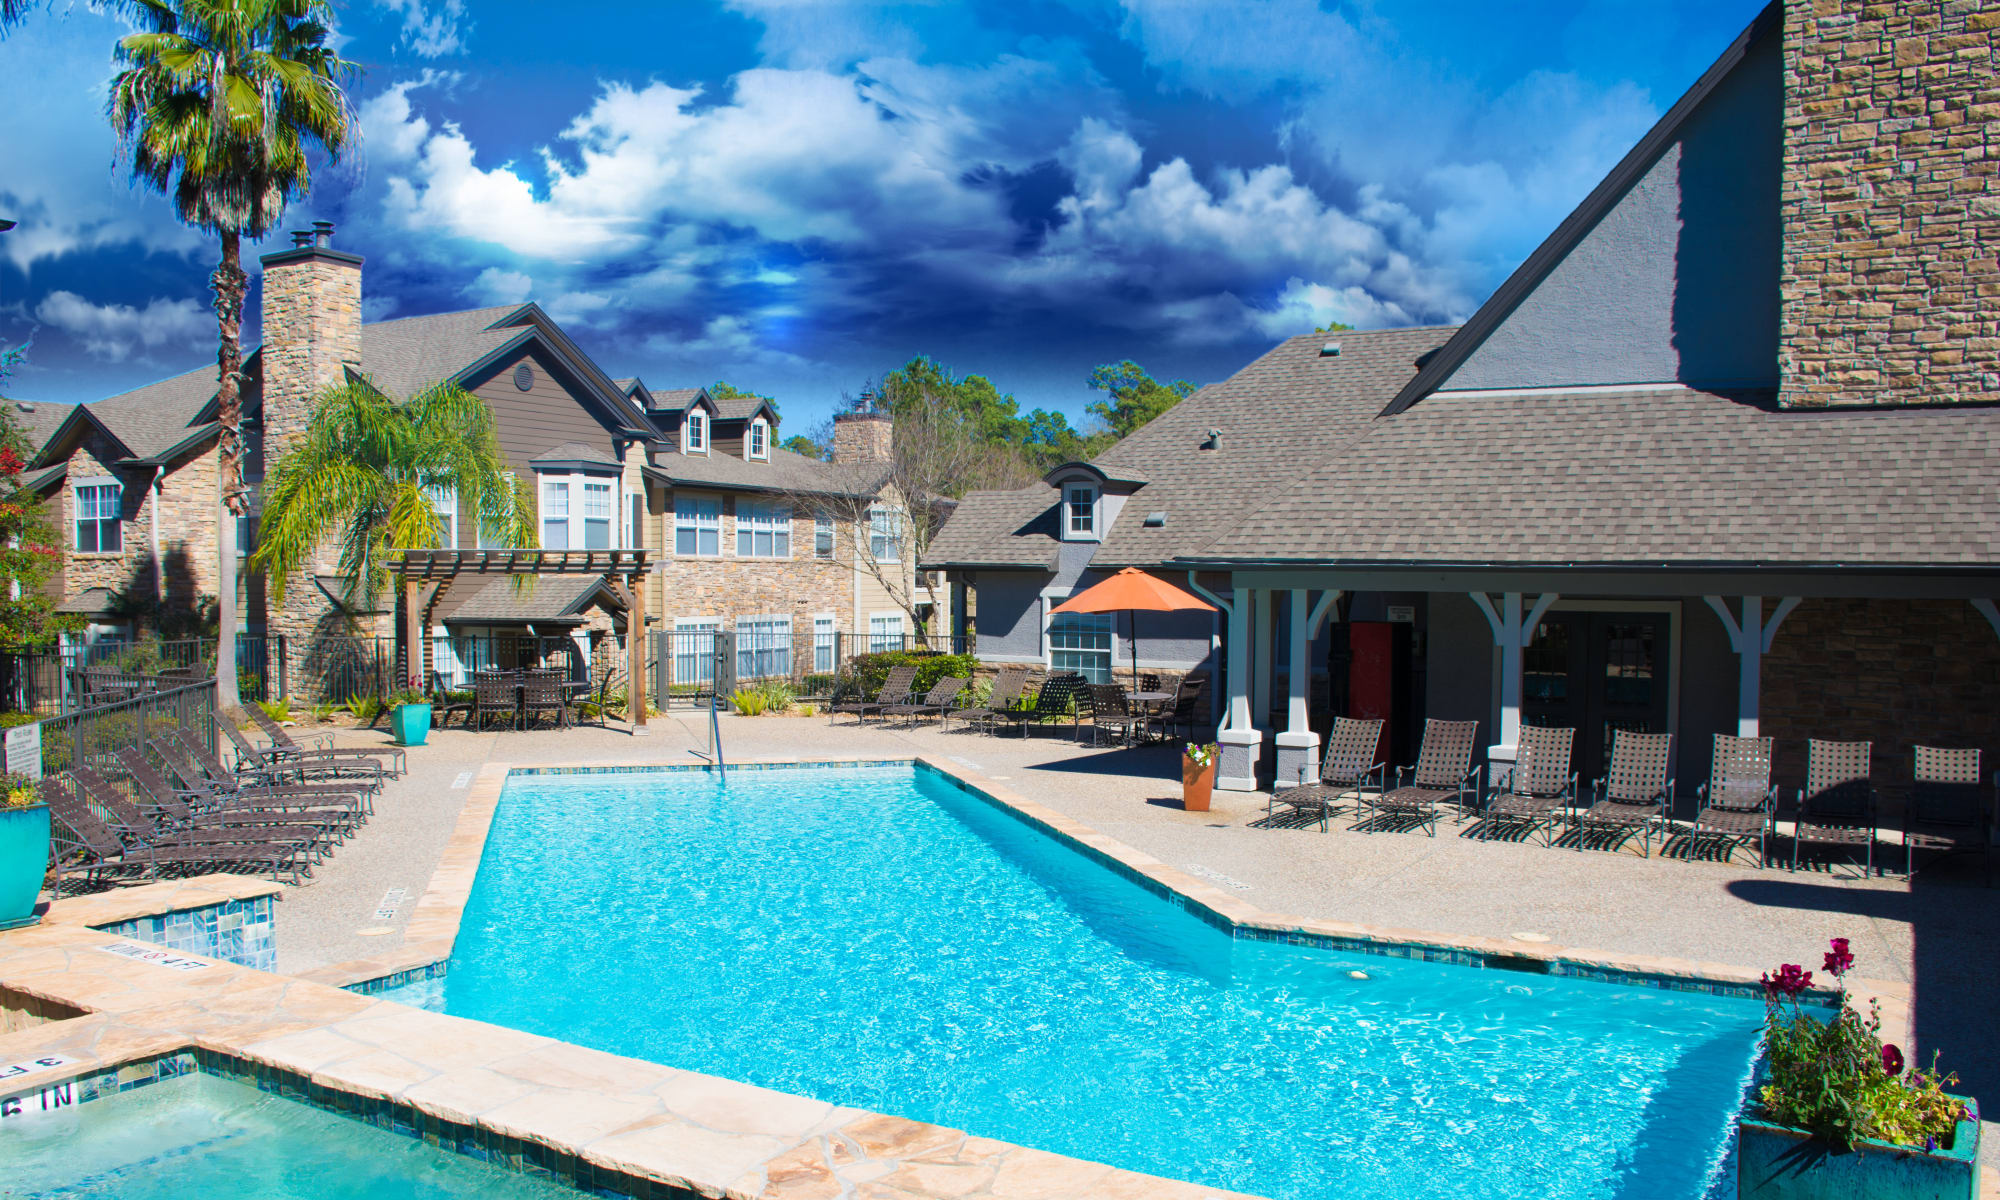 Apartments in The Woodlands, Texas